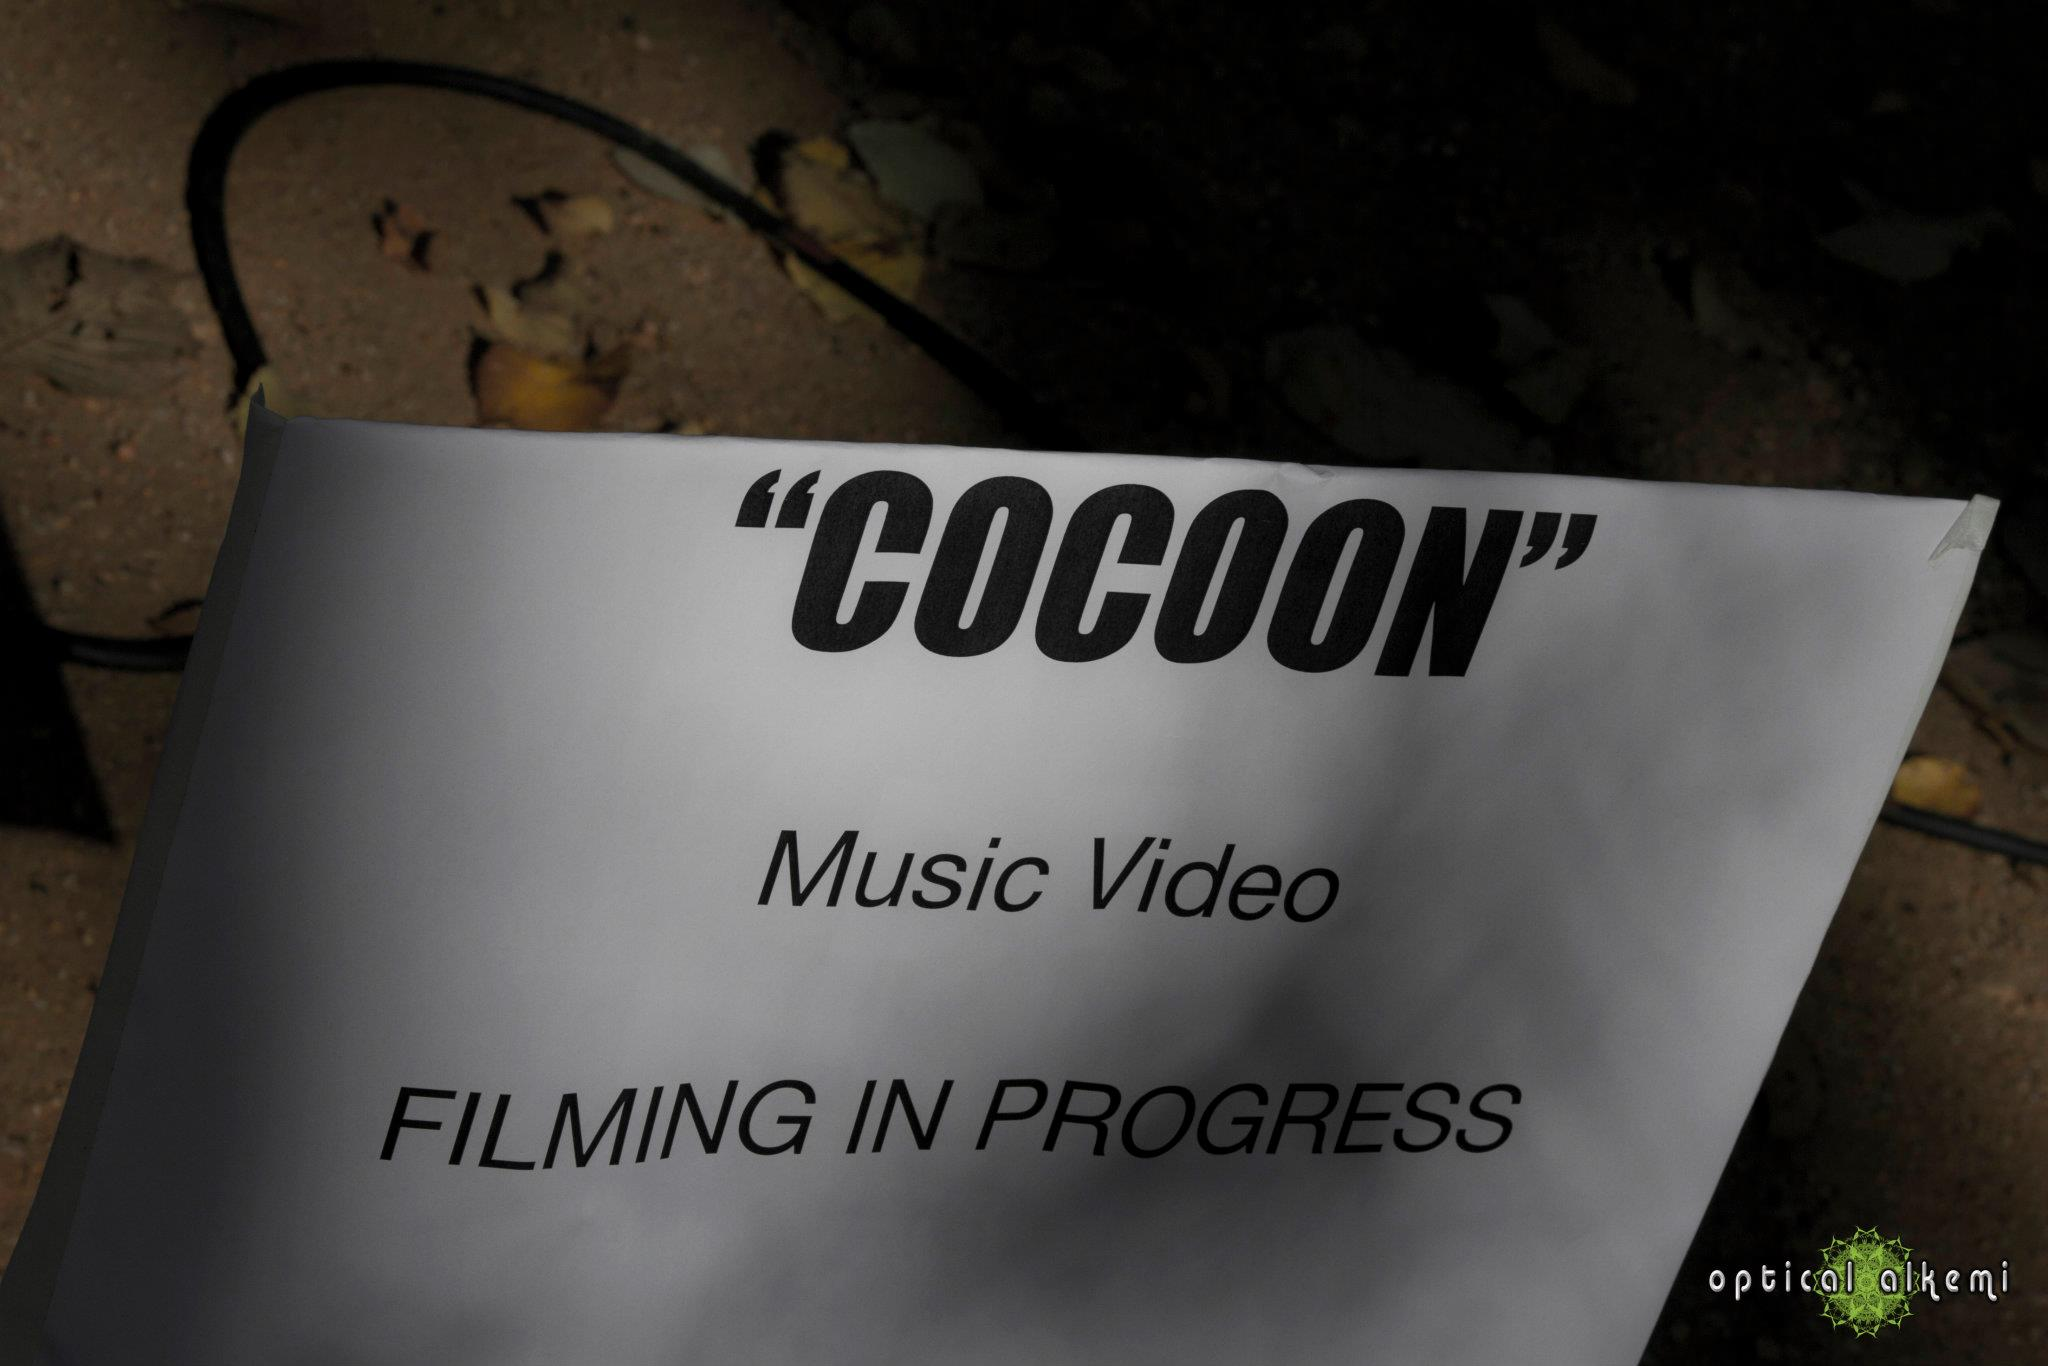 COCOON (Music Video)